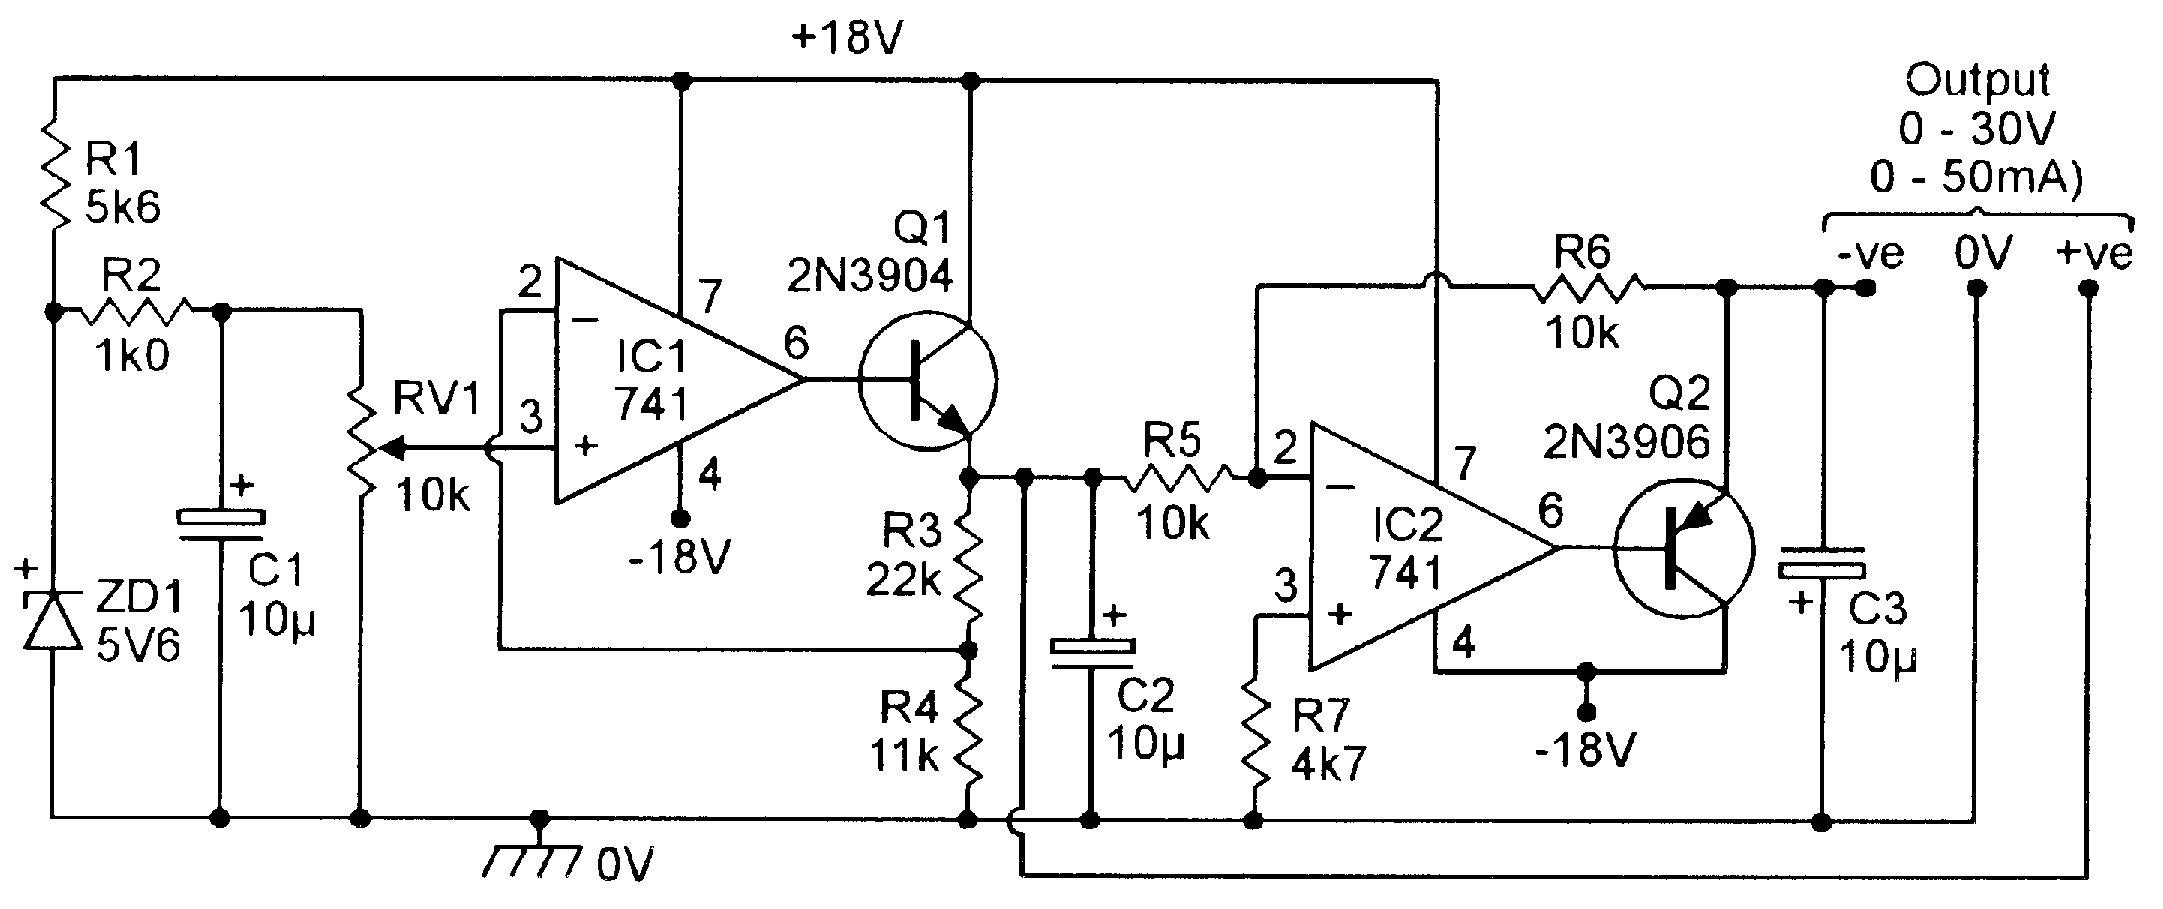 Op Amp Cookbook Part 4 Nuts Volts Magazine Simple Currenttovoltage Converter Circuit Diagram Electronic Center Tapped 0 To 30v Psu